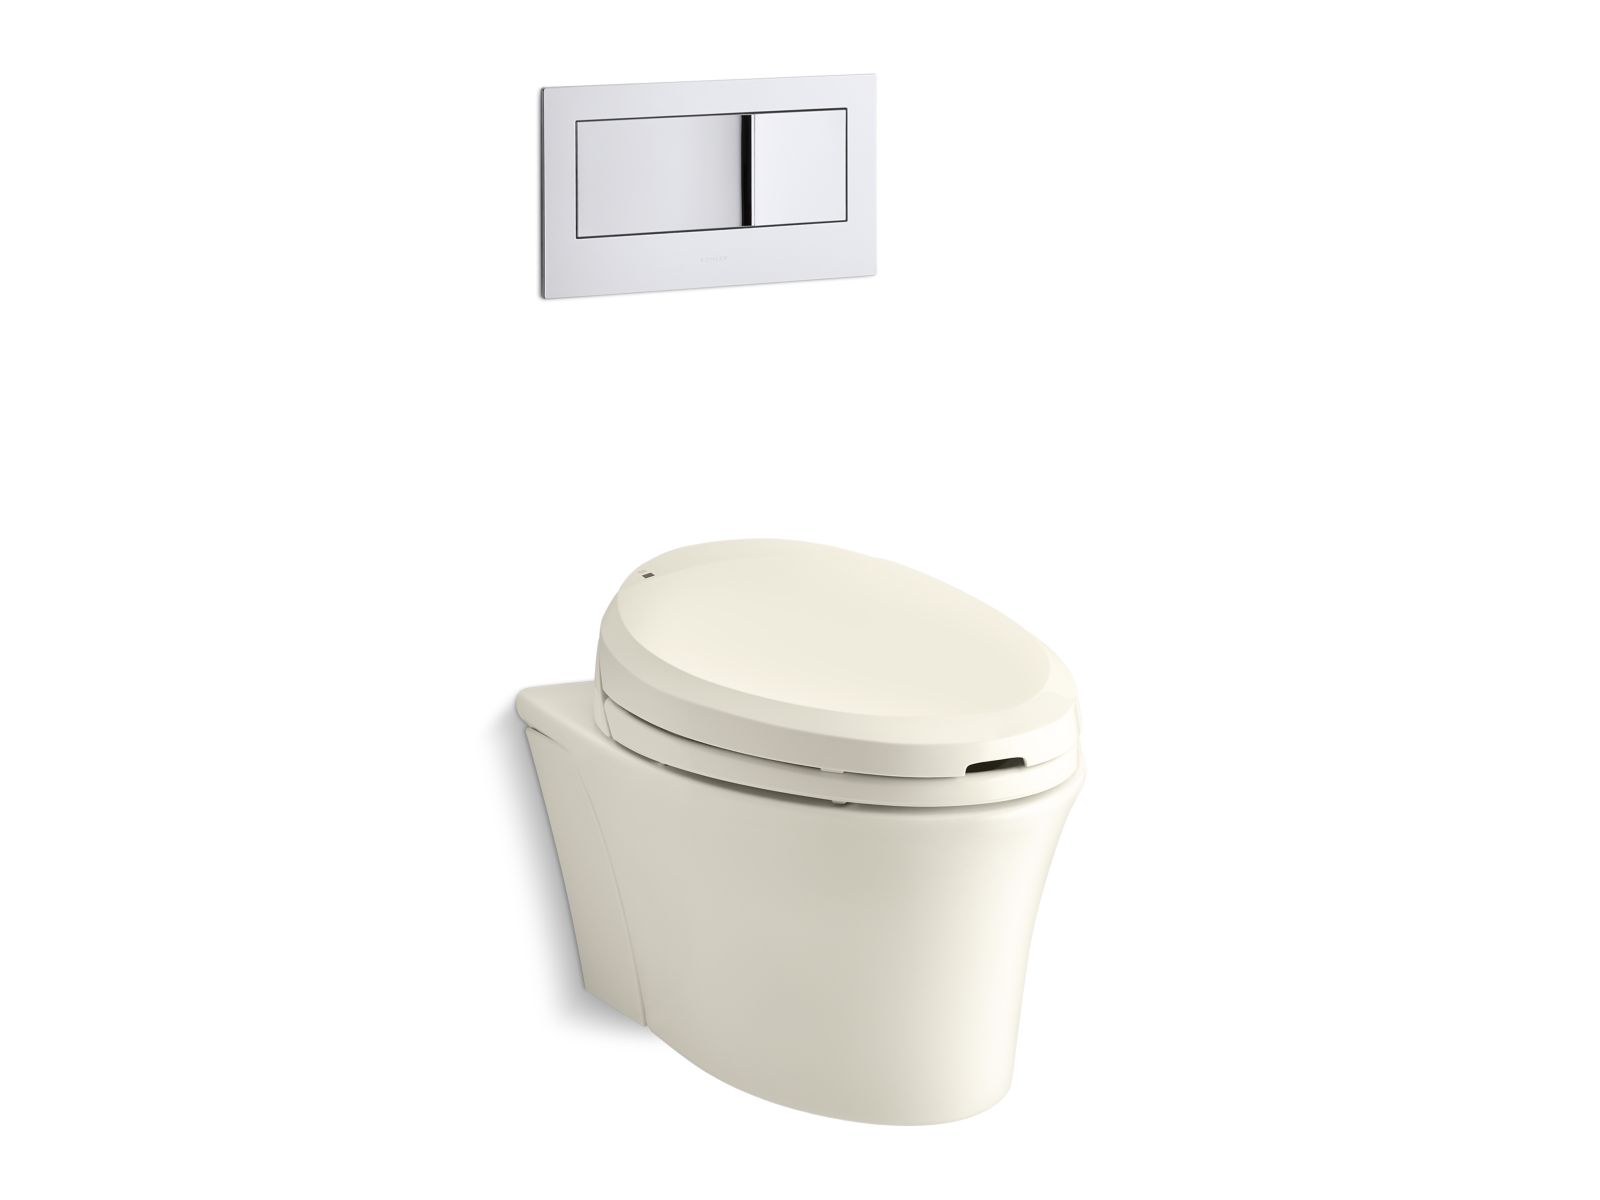 Kohler C3® 201 K-4744-96 elongated bidet toilet seat with in-line heater and remote controls Biscuit